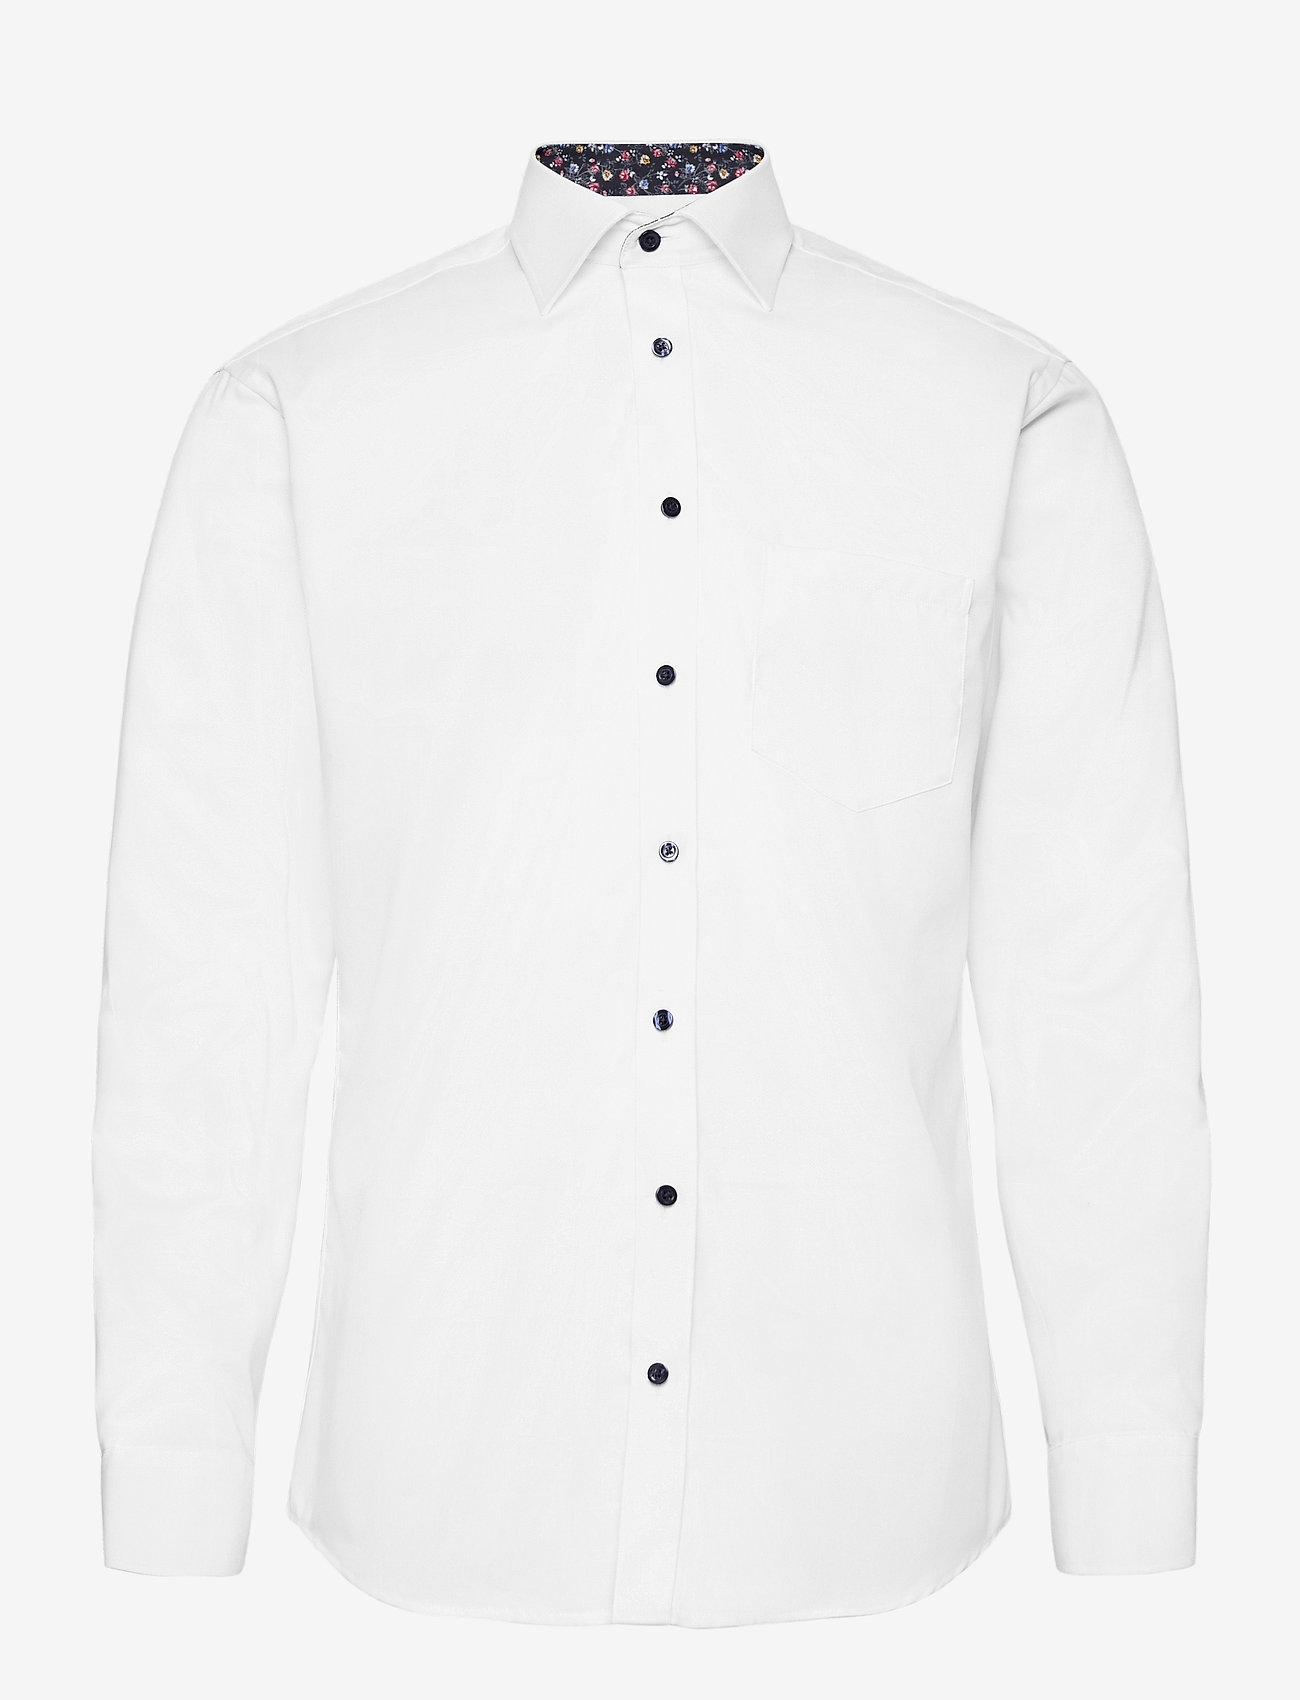 Bosweel Shirts Est. 1937 - White Structure with contrast - chemises d'affaires - white - 0